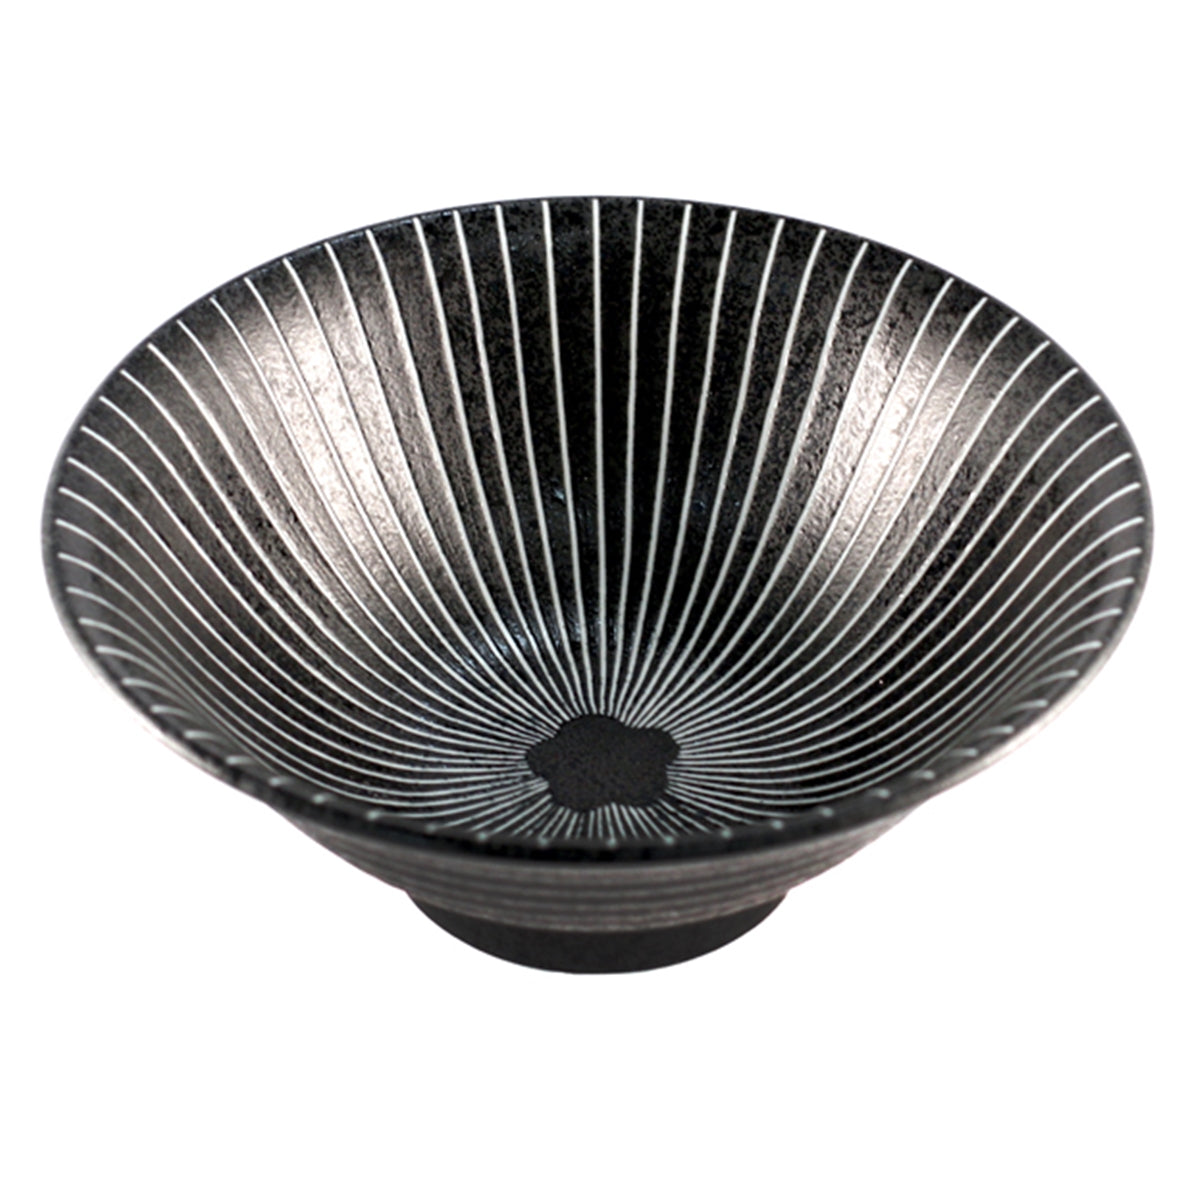 "Black Bowl with Stripes 31 fl oz / 7.64"" dia"